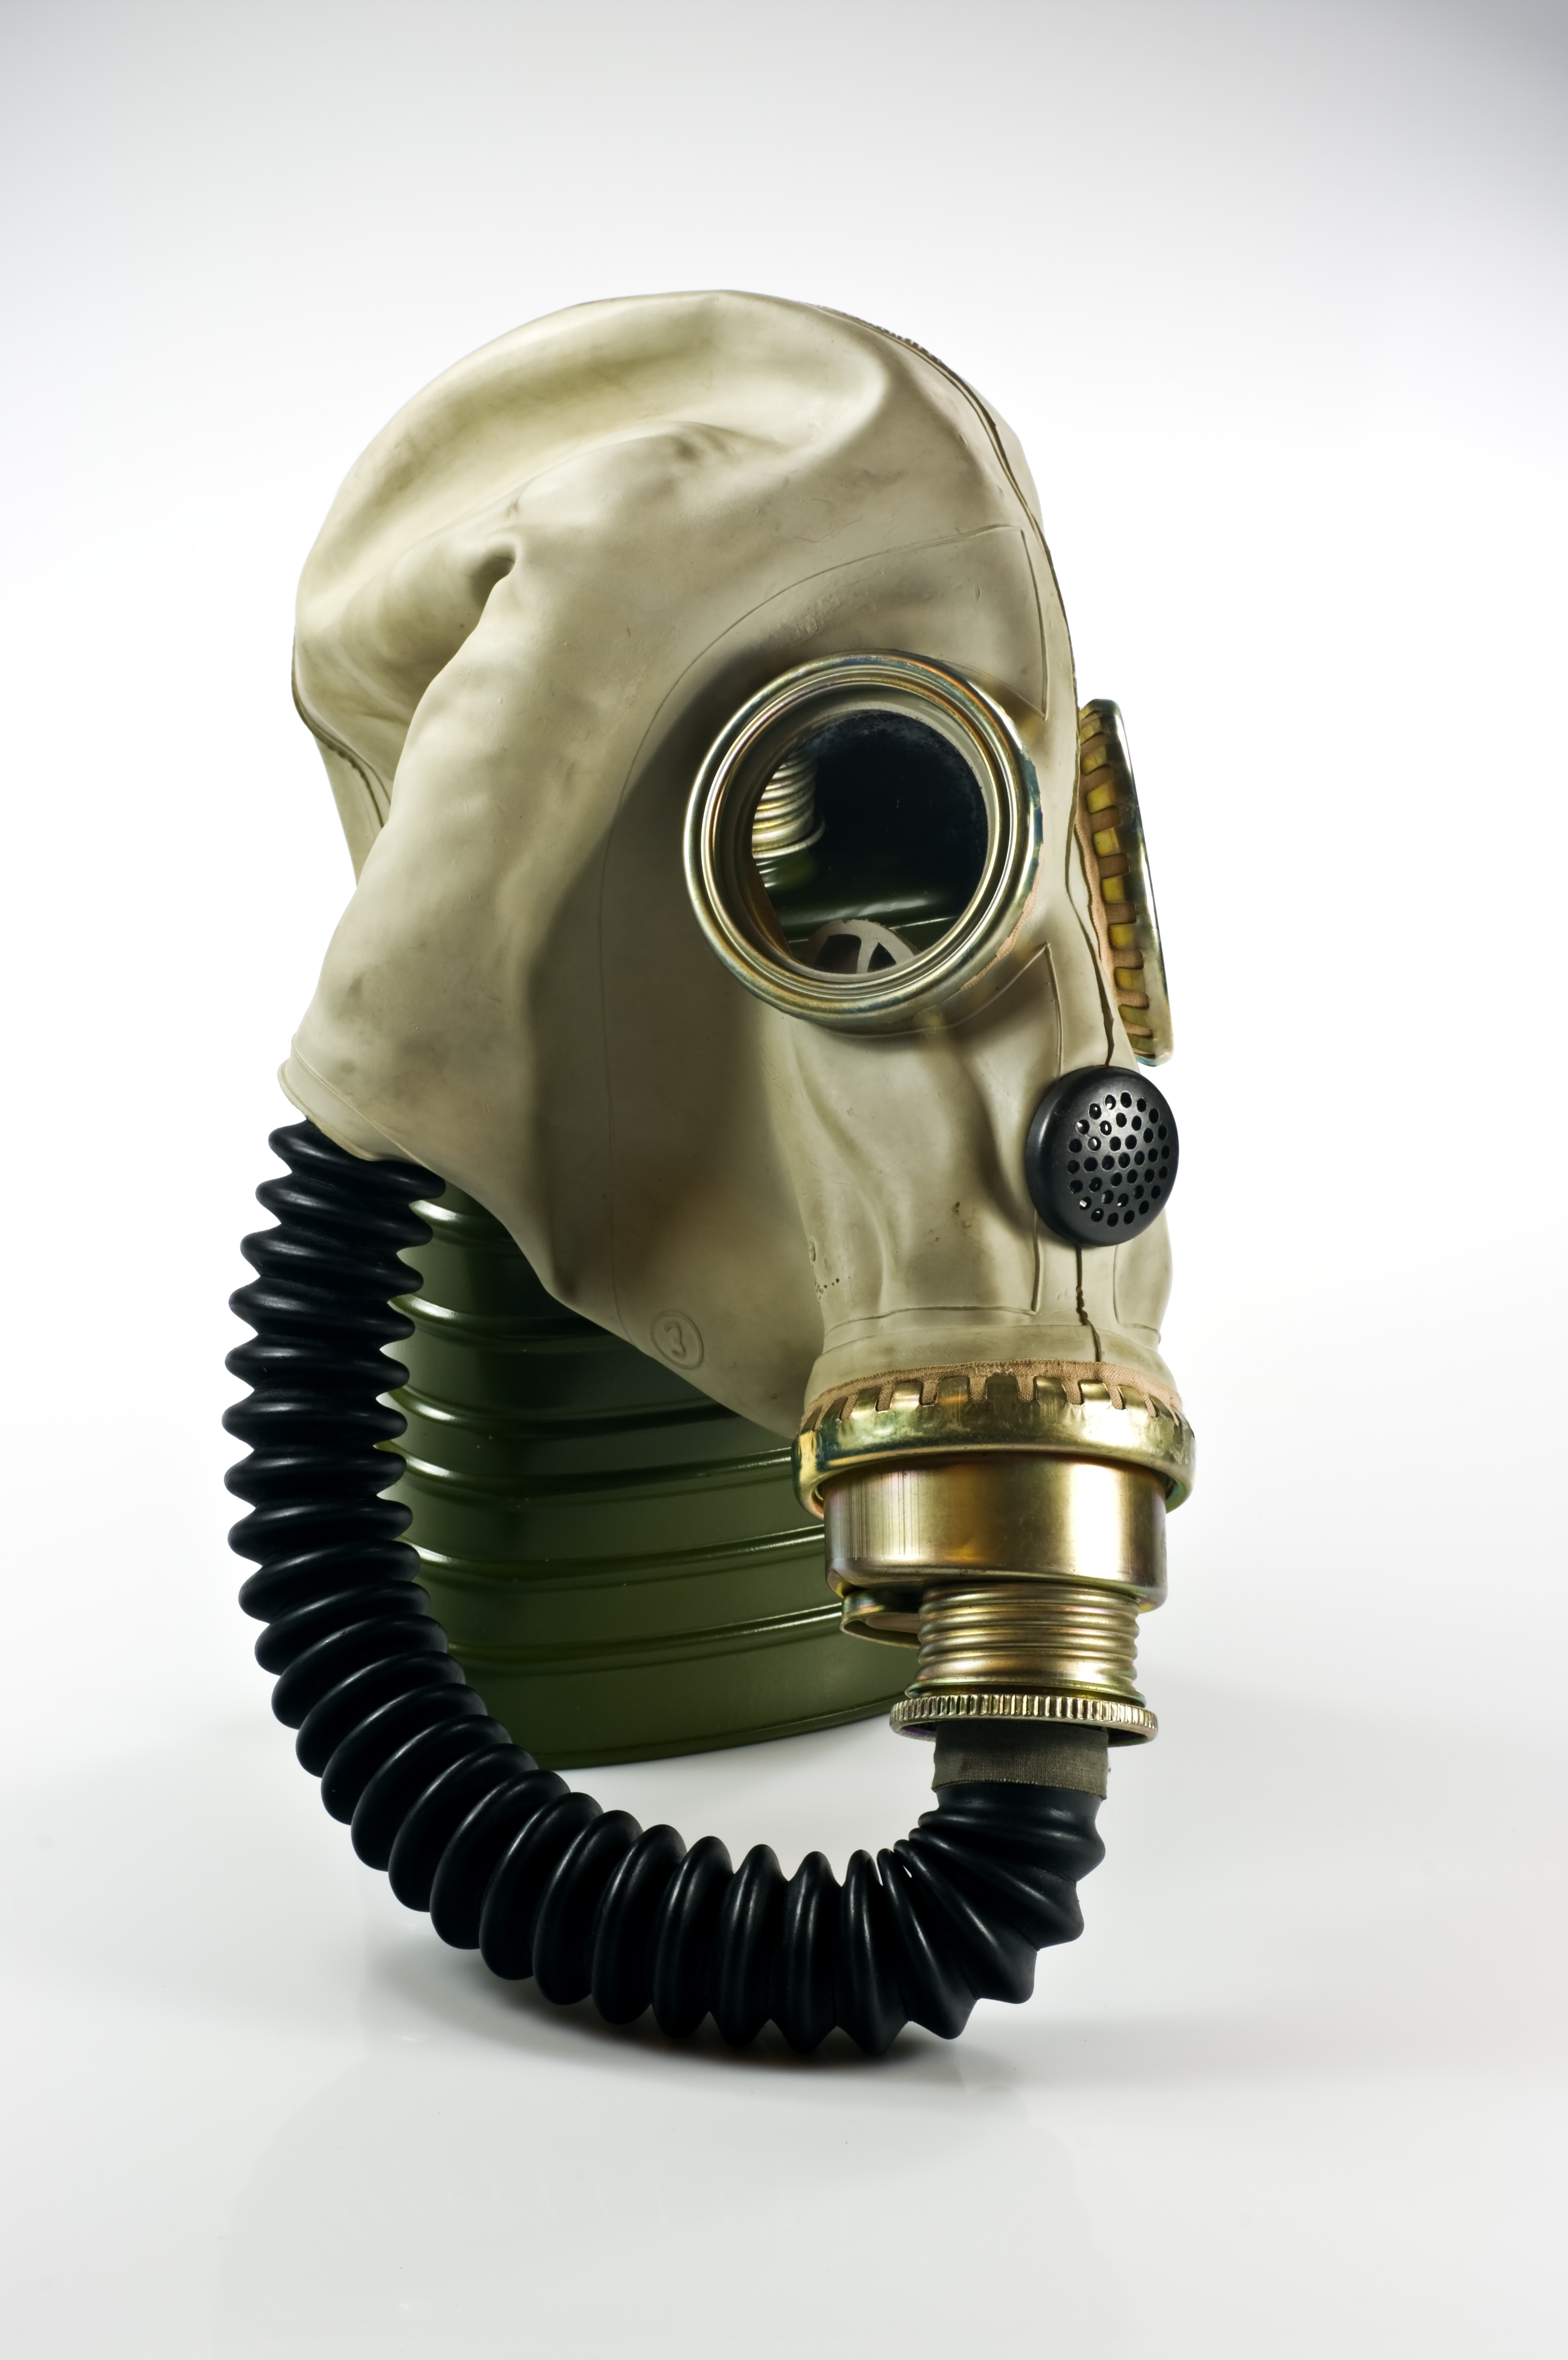 HQ Gas Mask Wallpapers | File 2464.97Kb